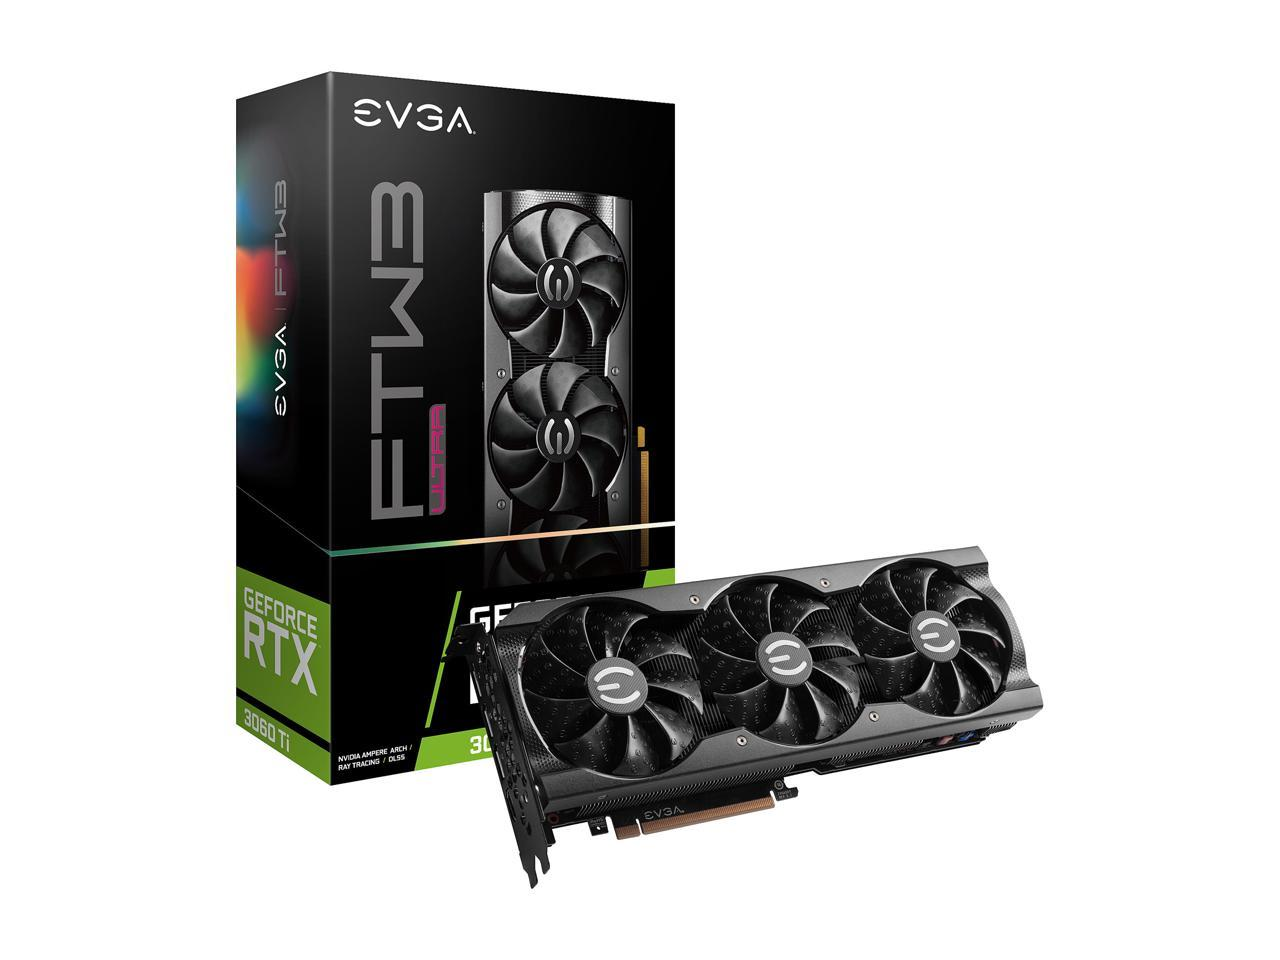 EVGA GeForce RTX 3060 Ti FTW ULTRA GAMING Video Card, 08G-P5-3667-KR, 8GB GDDR6, iCX3 Cooling, ARGB LED + 400W PSU Bundle BACKORDER